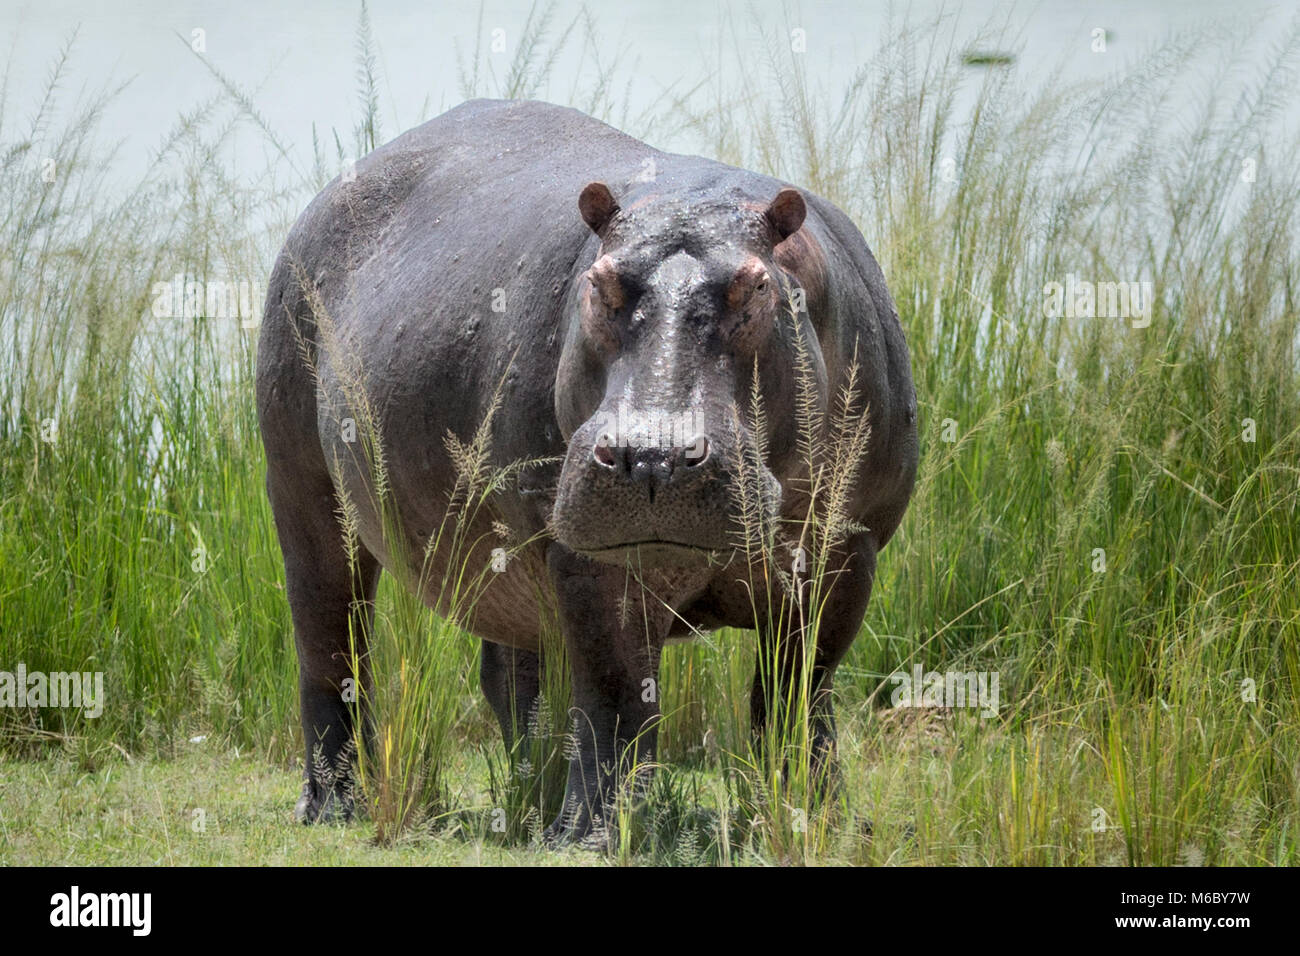 Hippopotame (Hippopotamus amphibius), 'Murchison's Falls National Park', l'Ouganda, l'Afrique Photo Stock